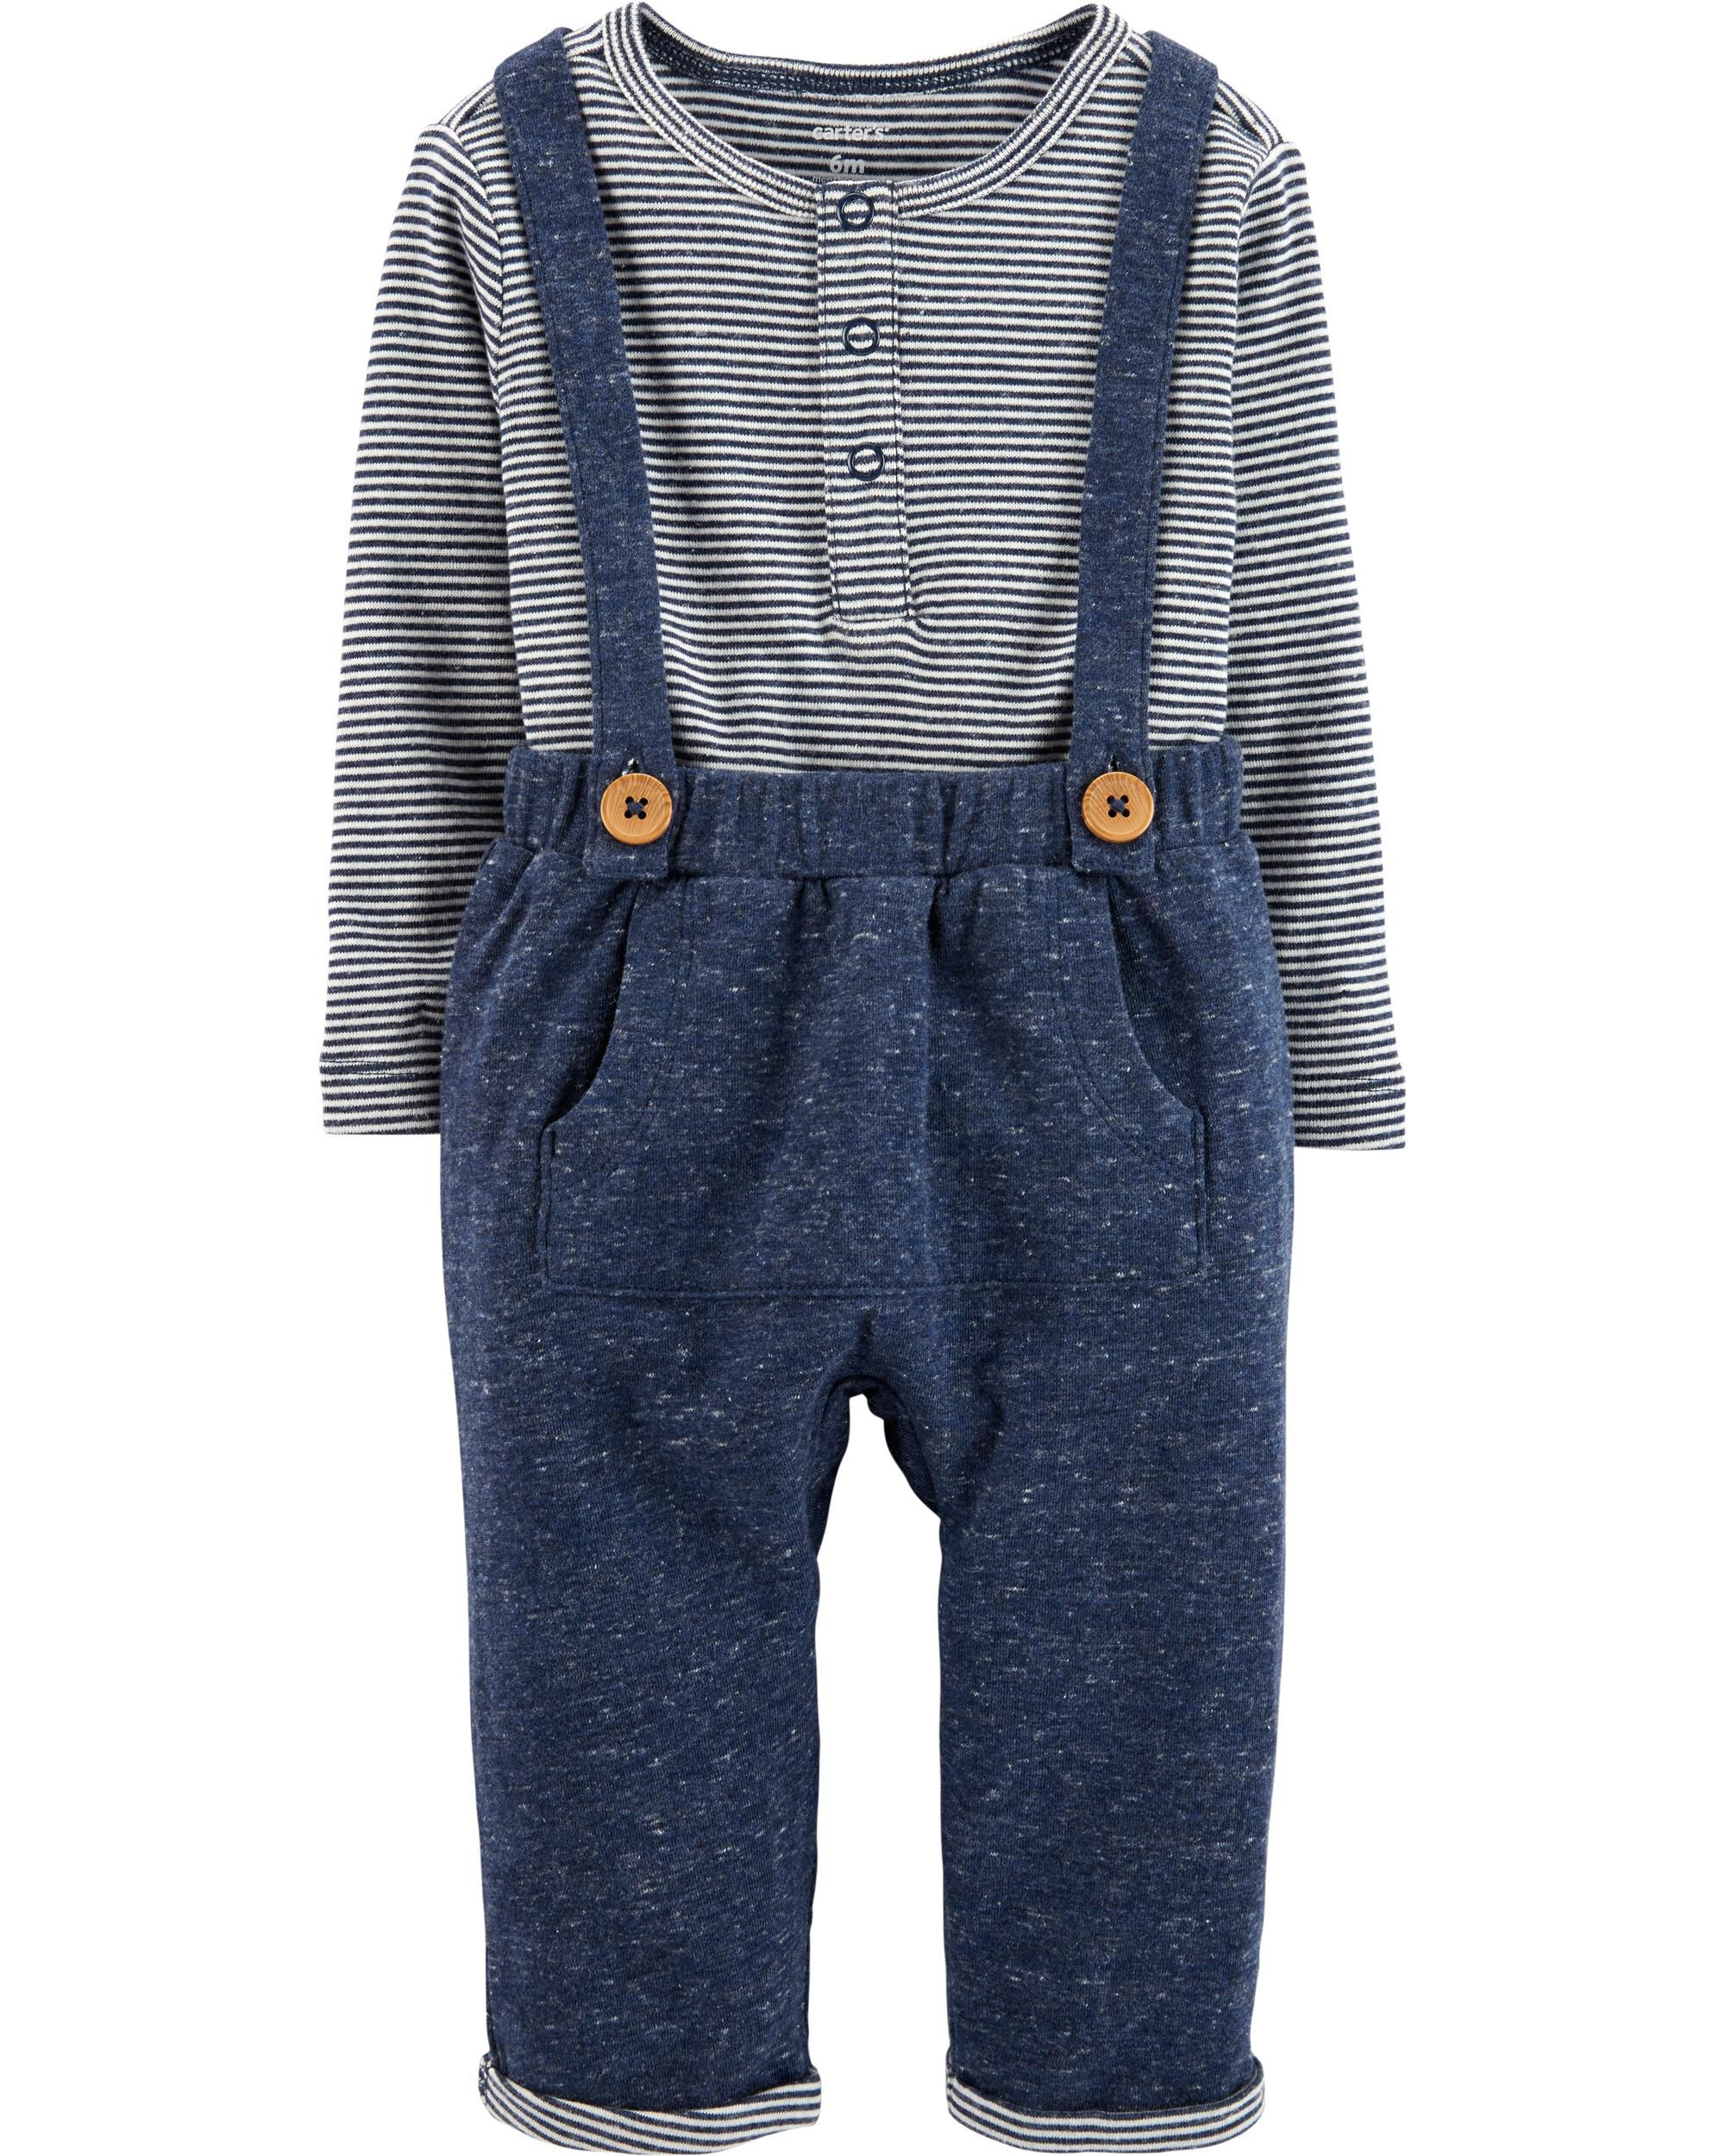 Carters Baby Boy Bear Terry Coverall Hat Bib Set Size Newborn 9 Months Navy  Grey 8cd29363f7ed